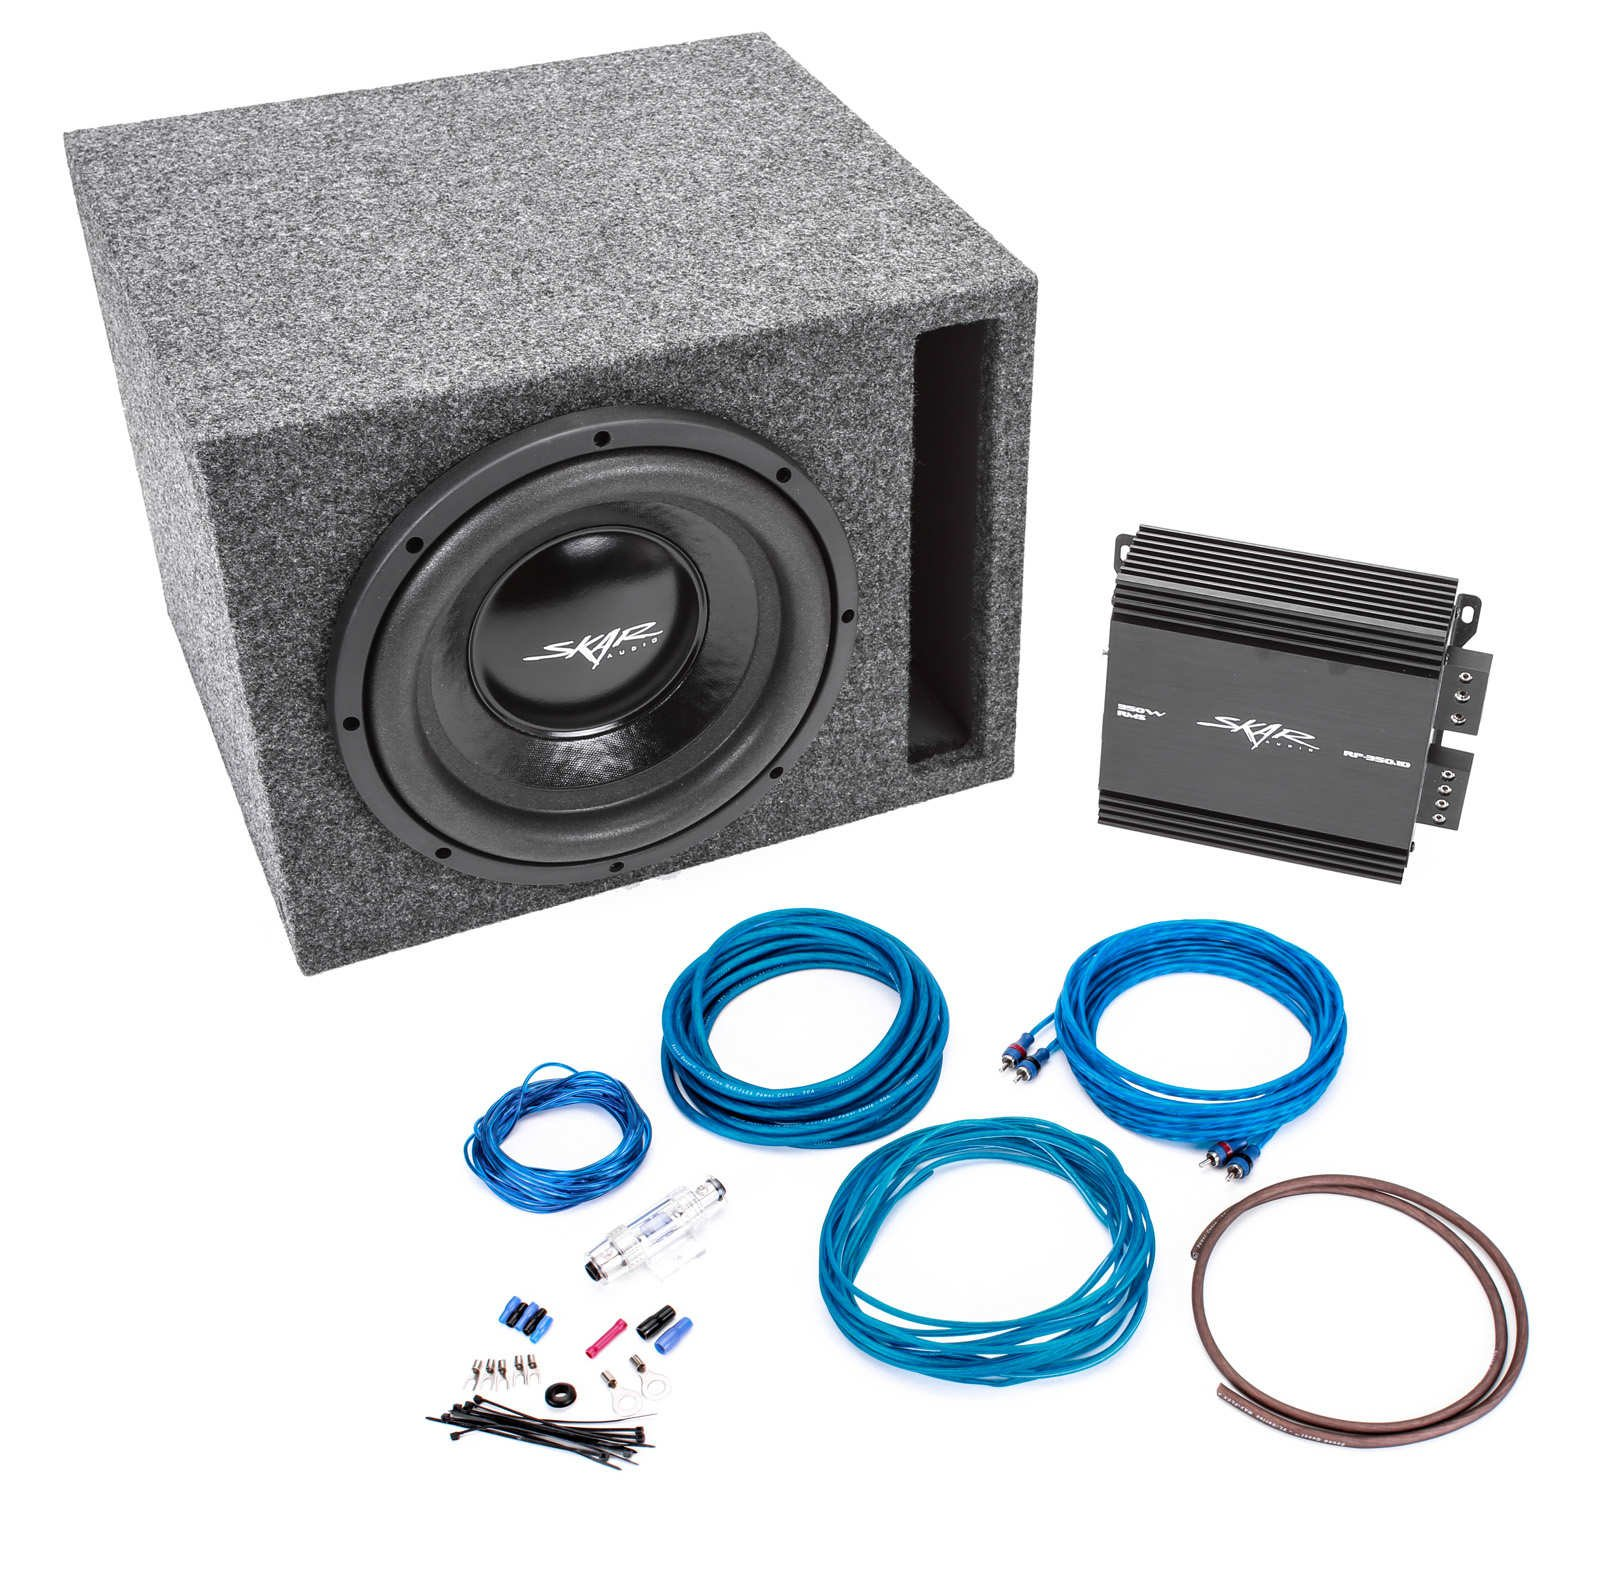 hight resolution of get quotations skar audio 400 watt complete car subwoofer package 10 inch subwoofer in ported box